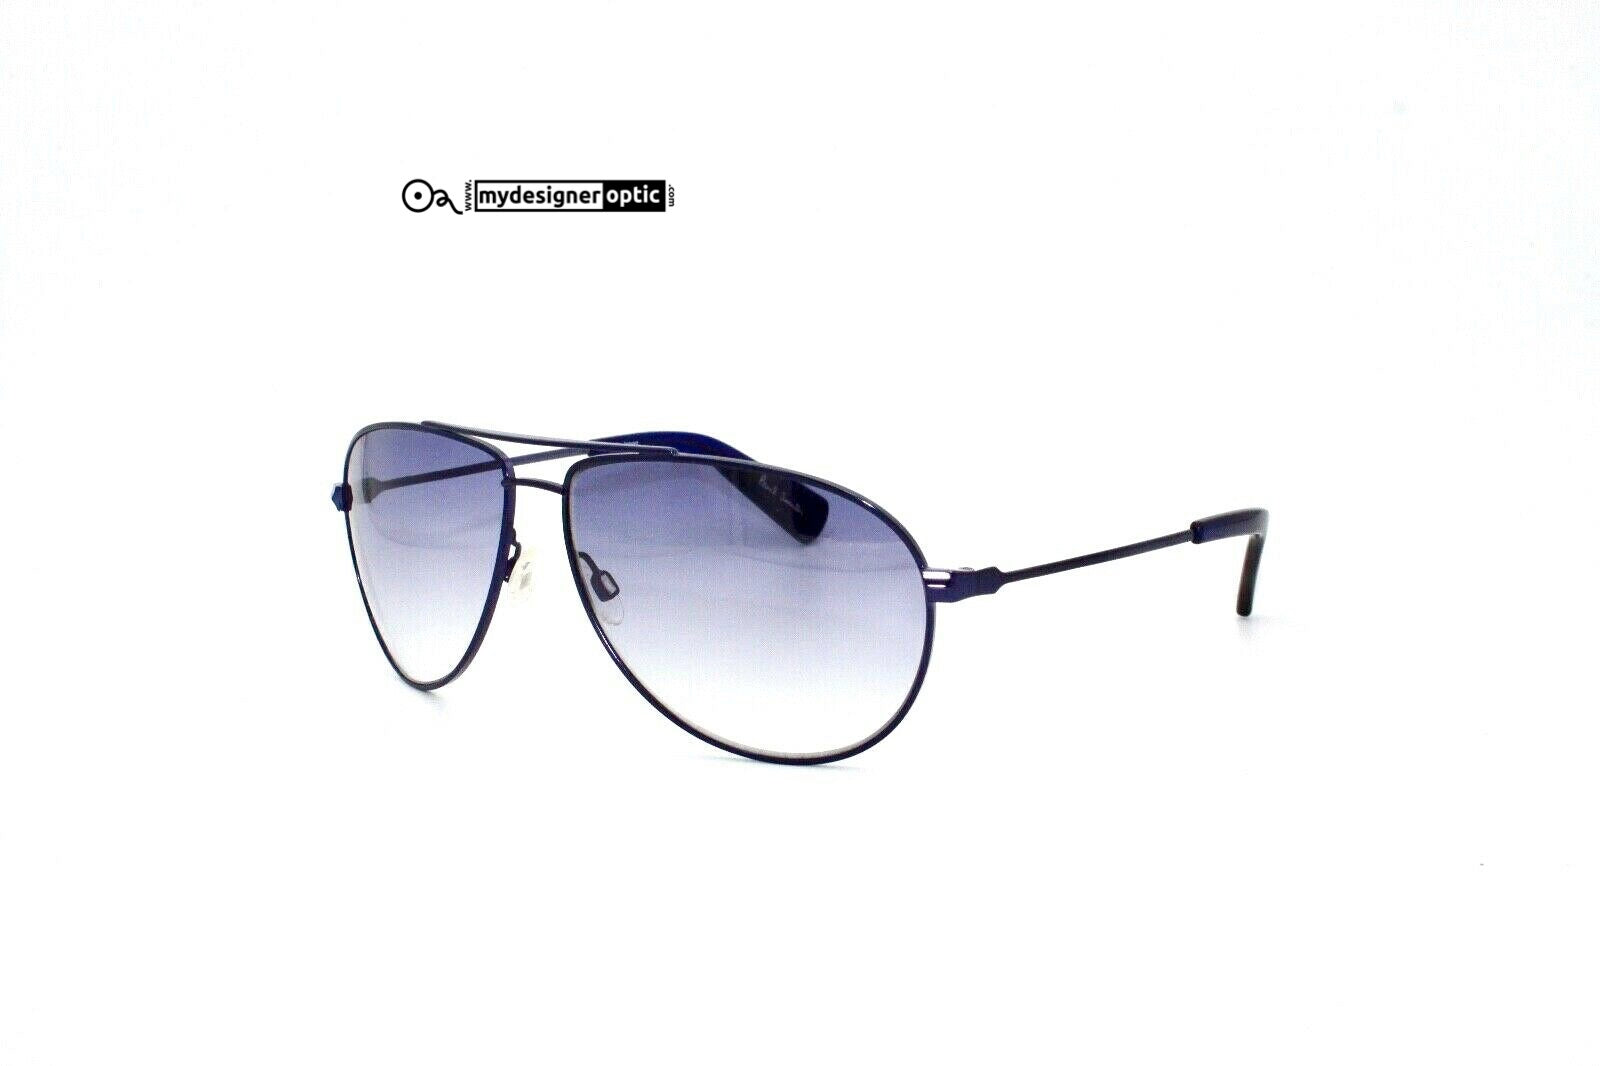 Paul Smith Sunglasses Navy PS-836 63-14-135 Made in Japan - Mydesigneroptic